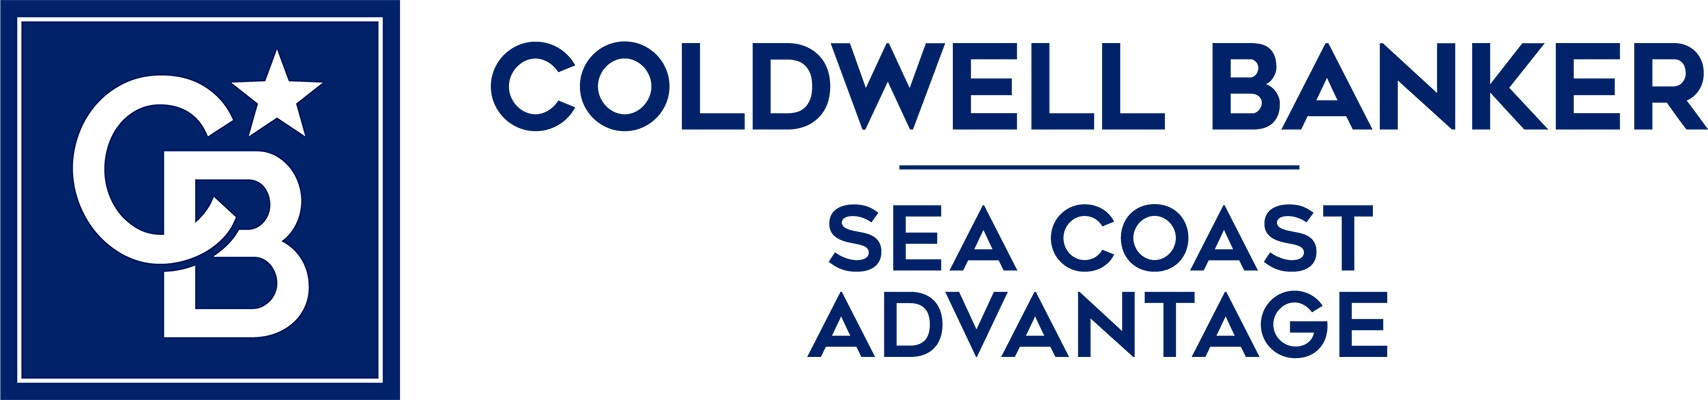 Fritts Causby - Coldwell Banker Sea Coast Advantage Realty Logo